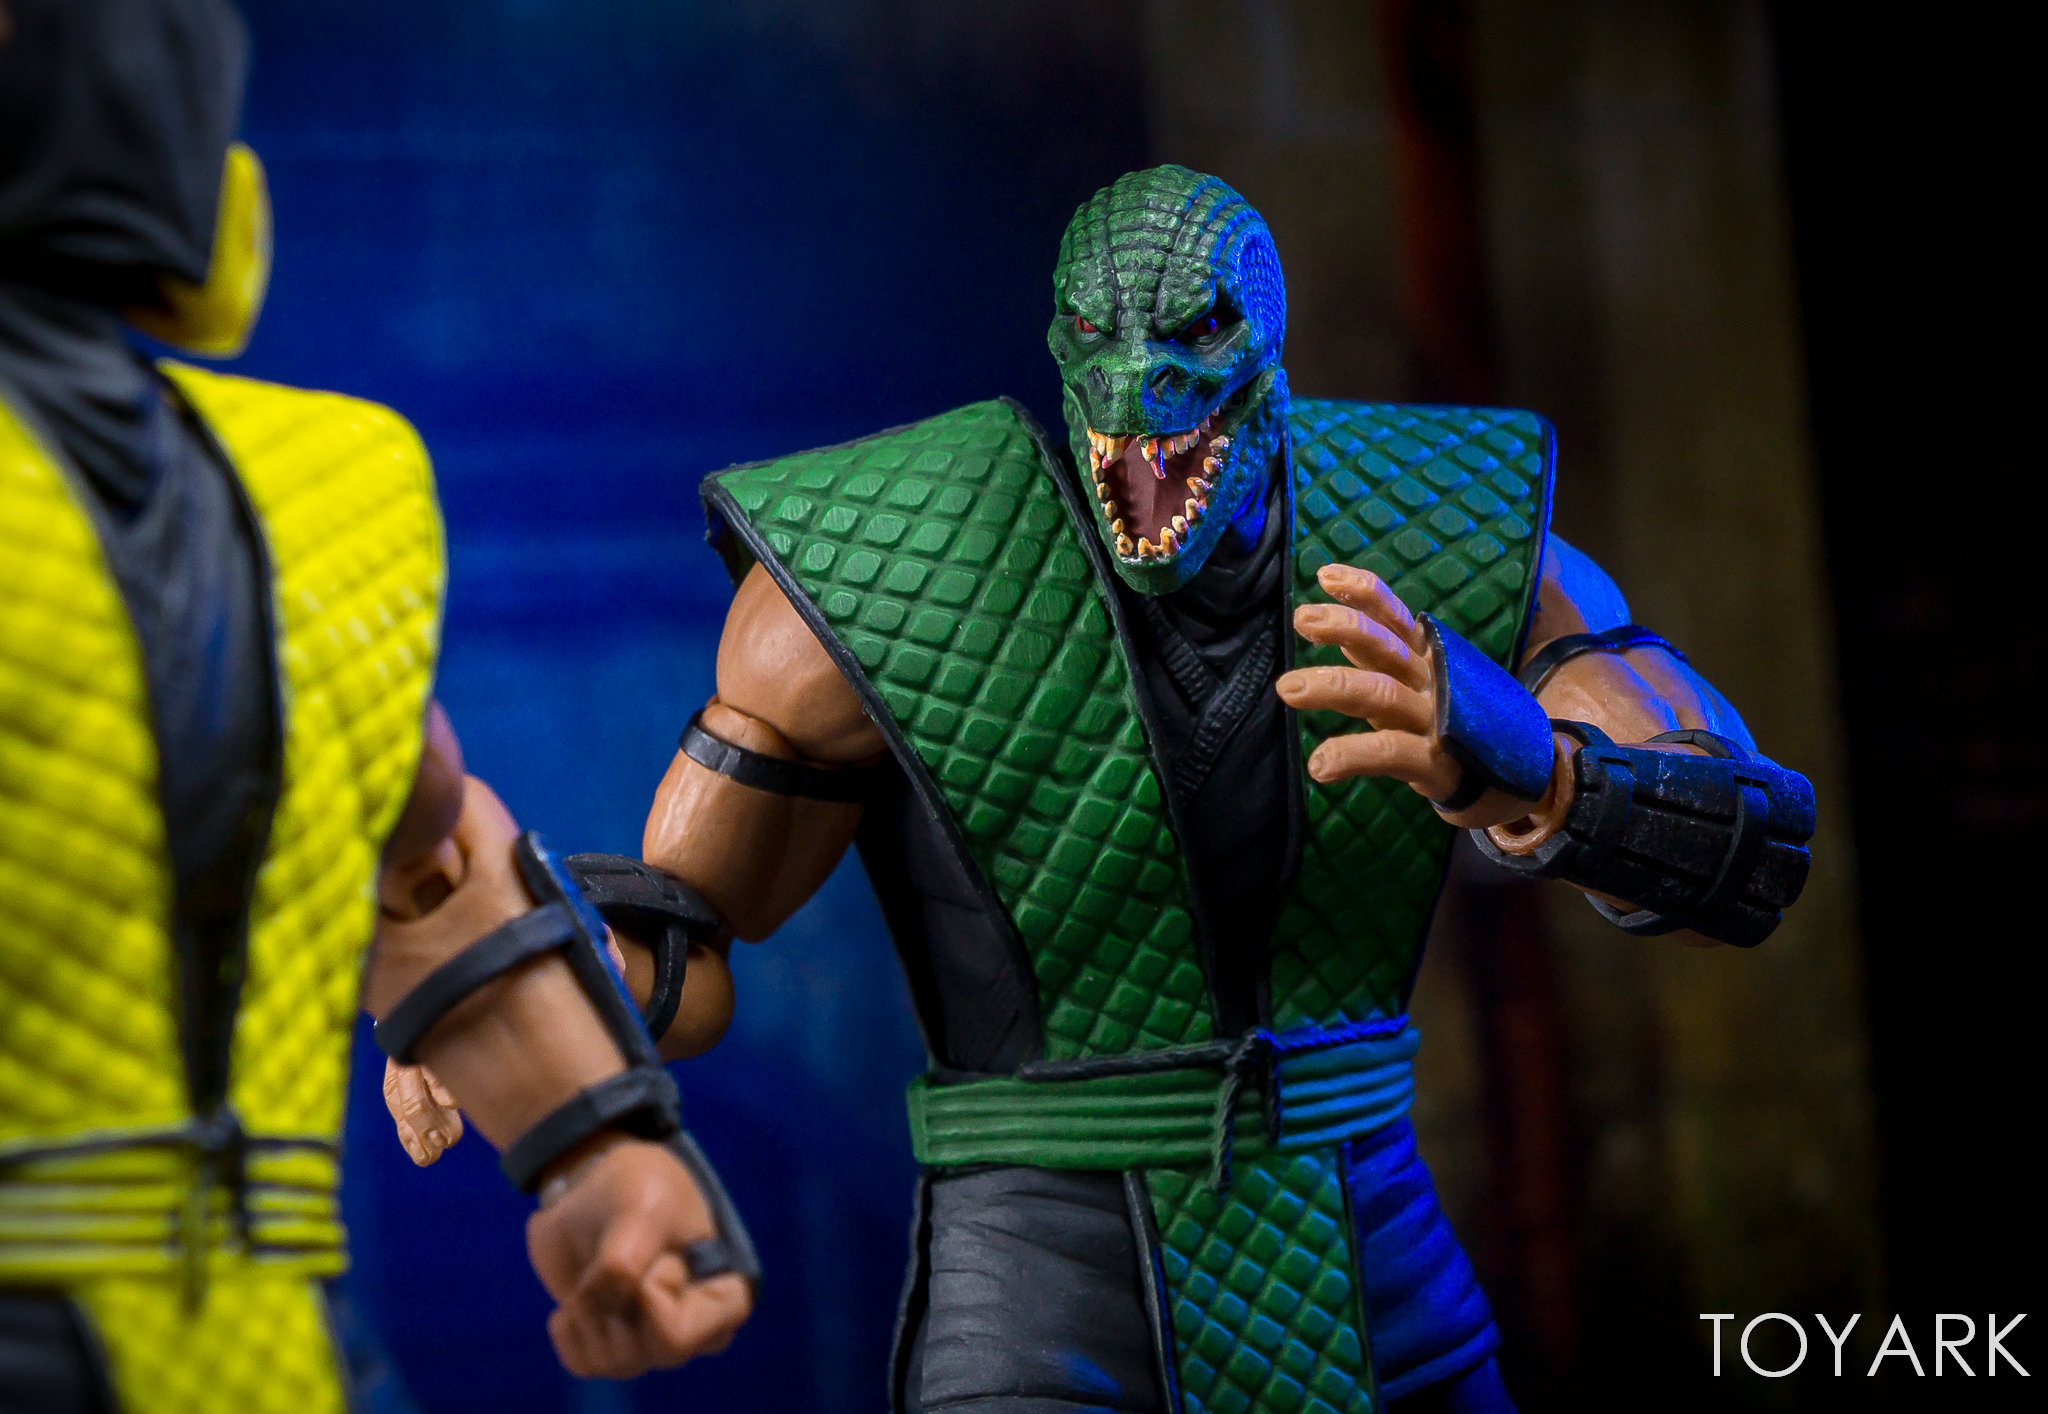 http://news.toyark.com/wp-content/uploads/sites/4/2018/02/Storm-Mortal-Kombat-Reptile-054.jpg